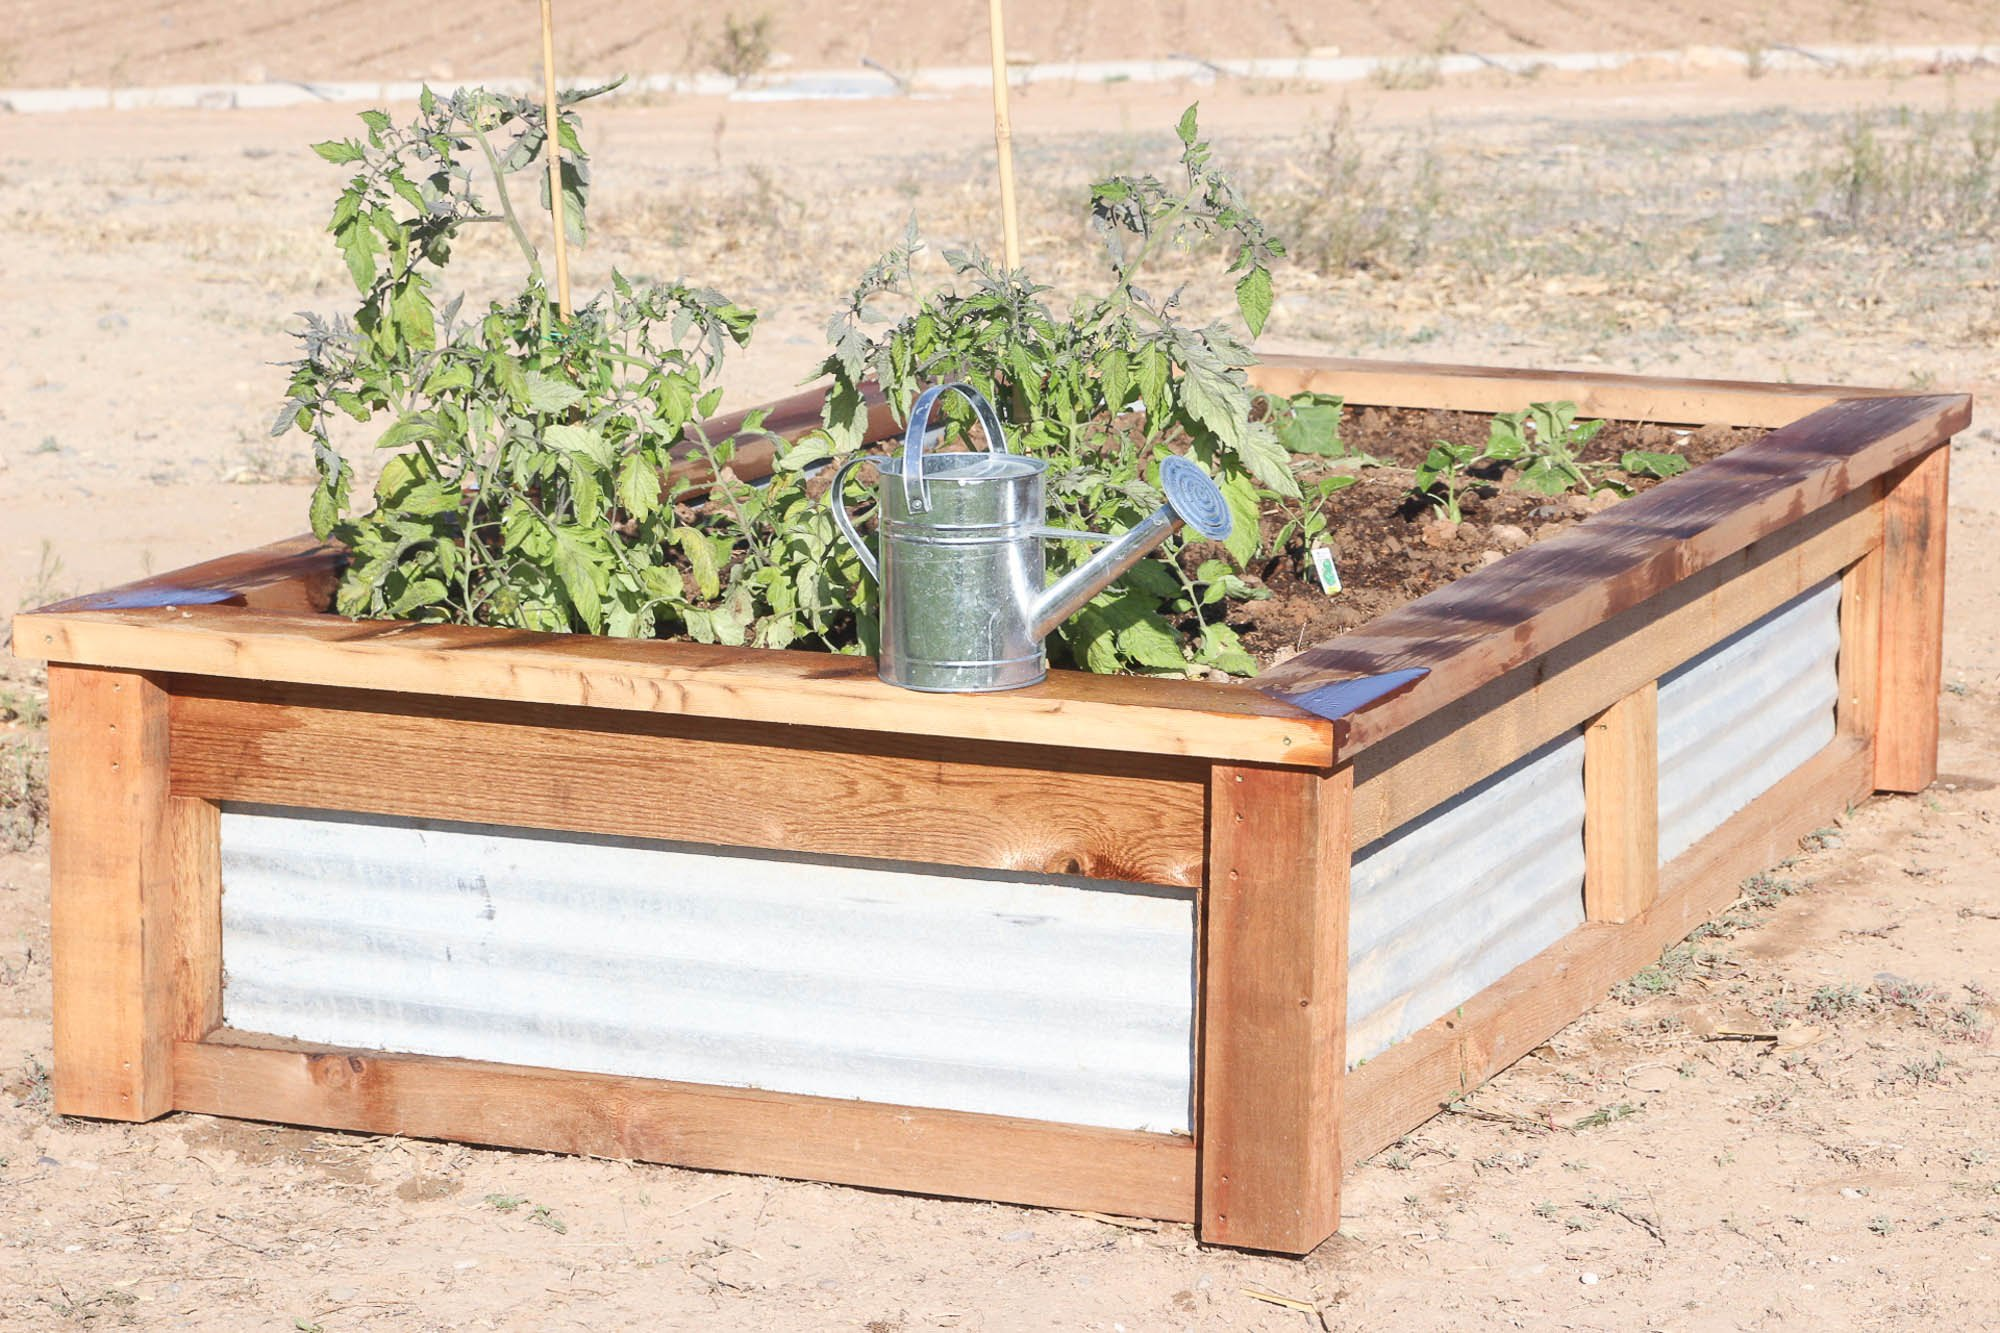 Instructions For Making Raised Garden Beds How To Build Raised Garden Beds With Corrugated Metal Ehow